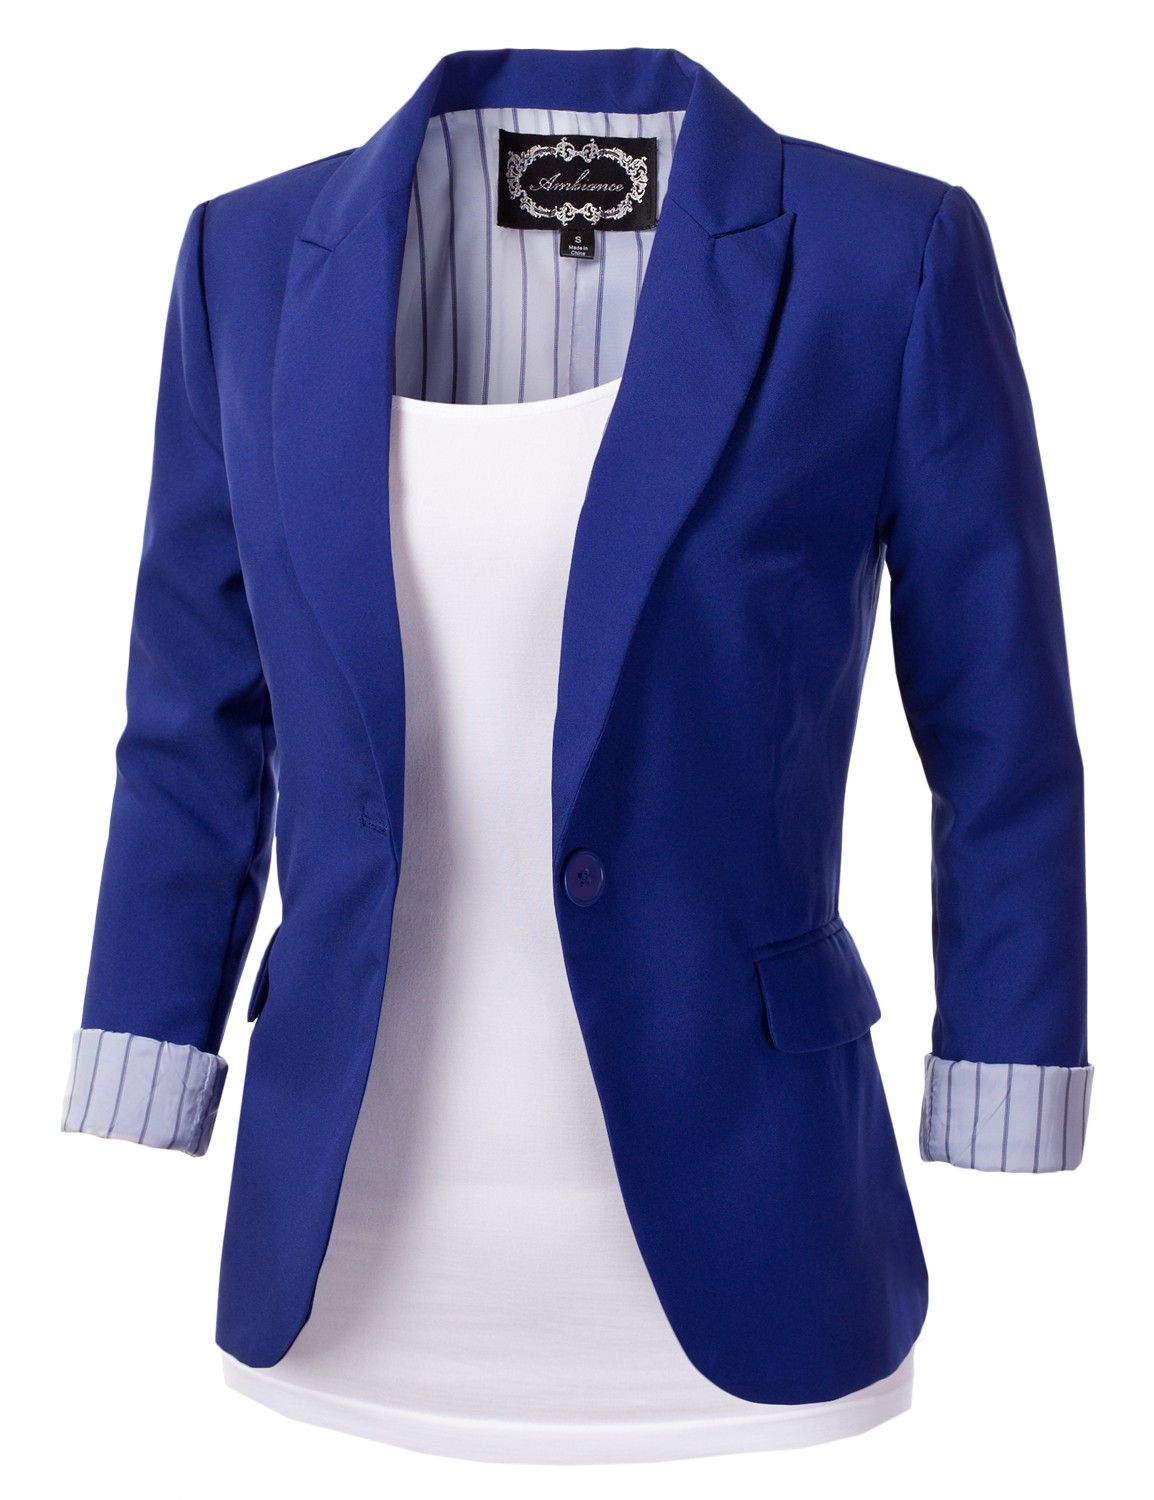 Pin By Elizabeth Martin On Blazers 3 Blue Blazer Women Fashion Blazer Fashion